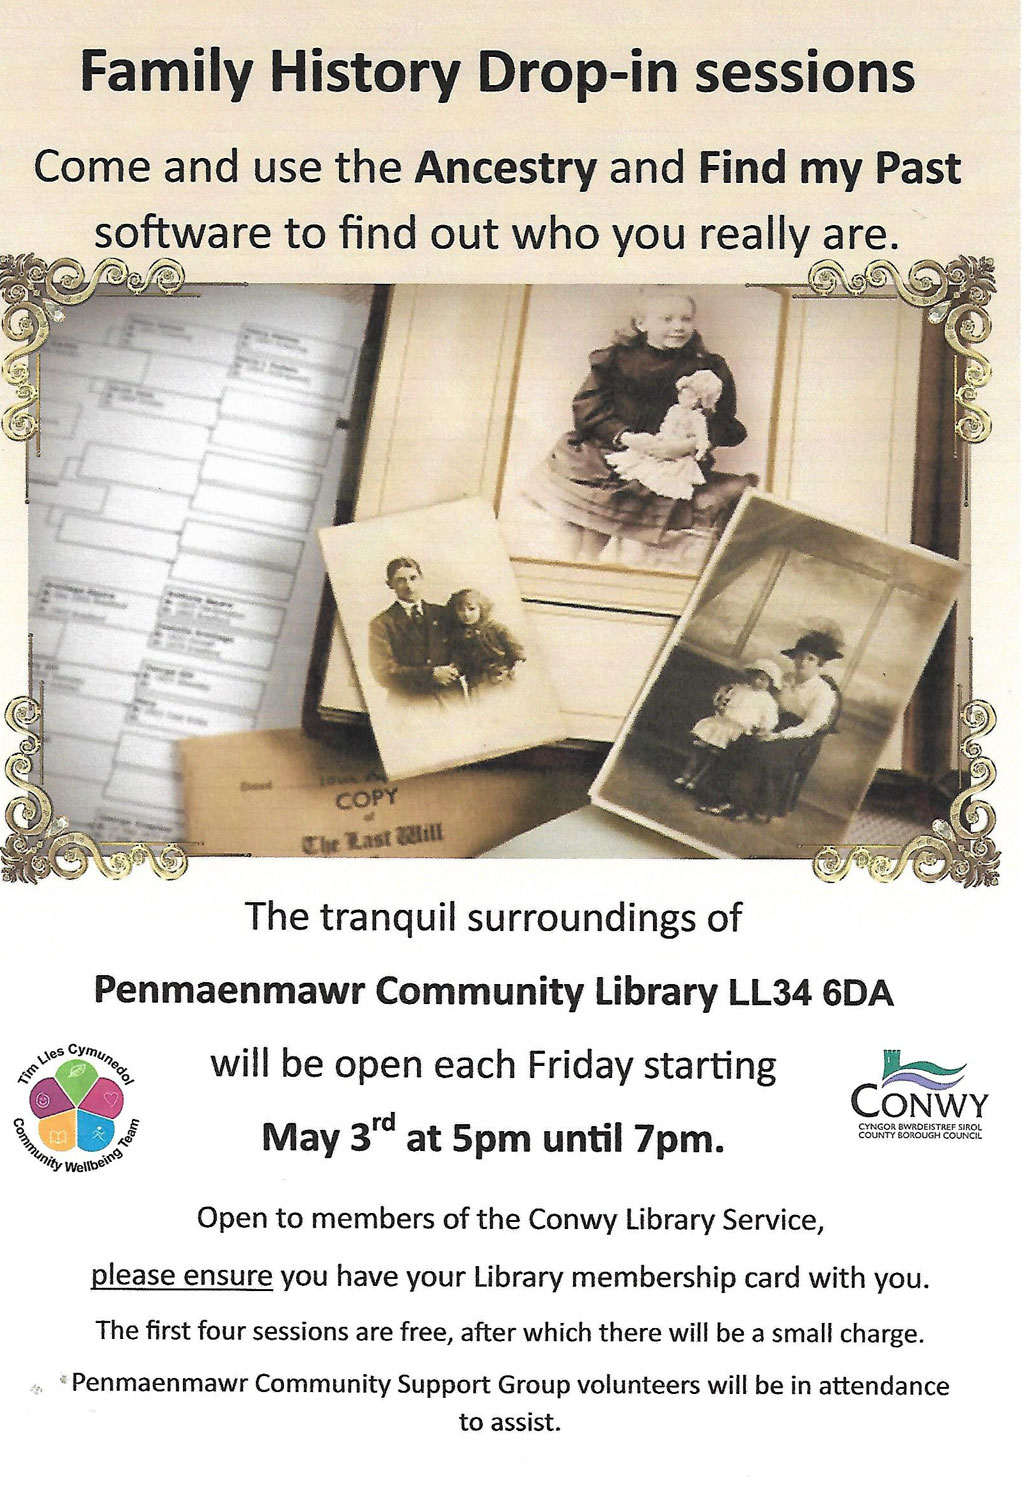 Family History Drop-in Sessions